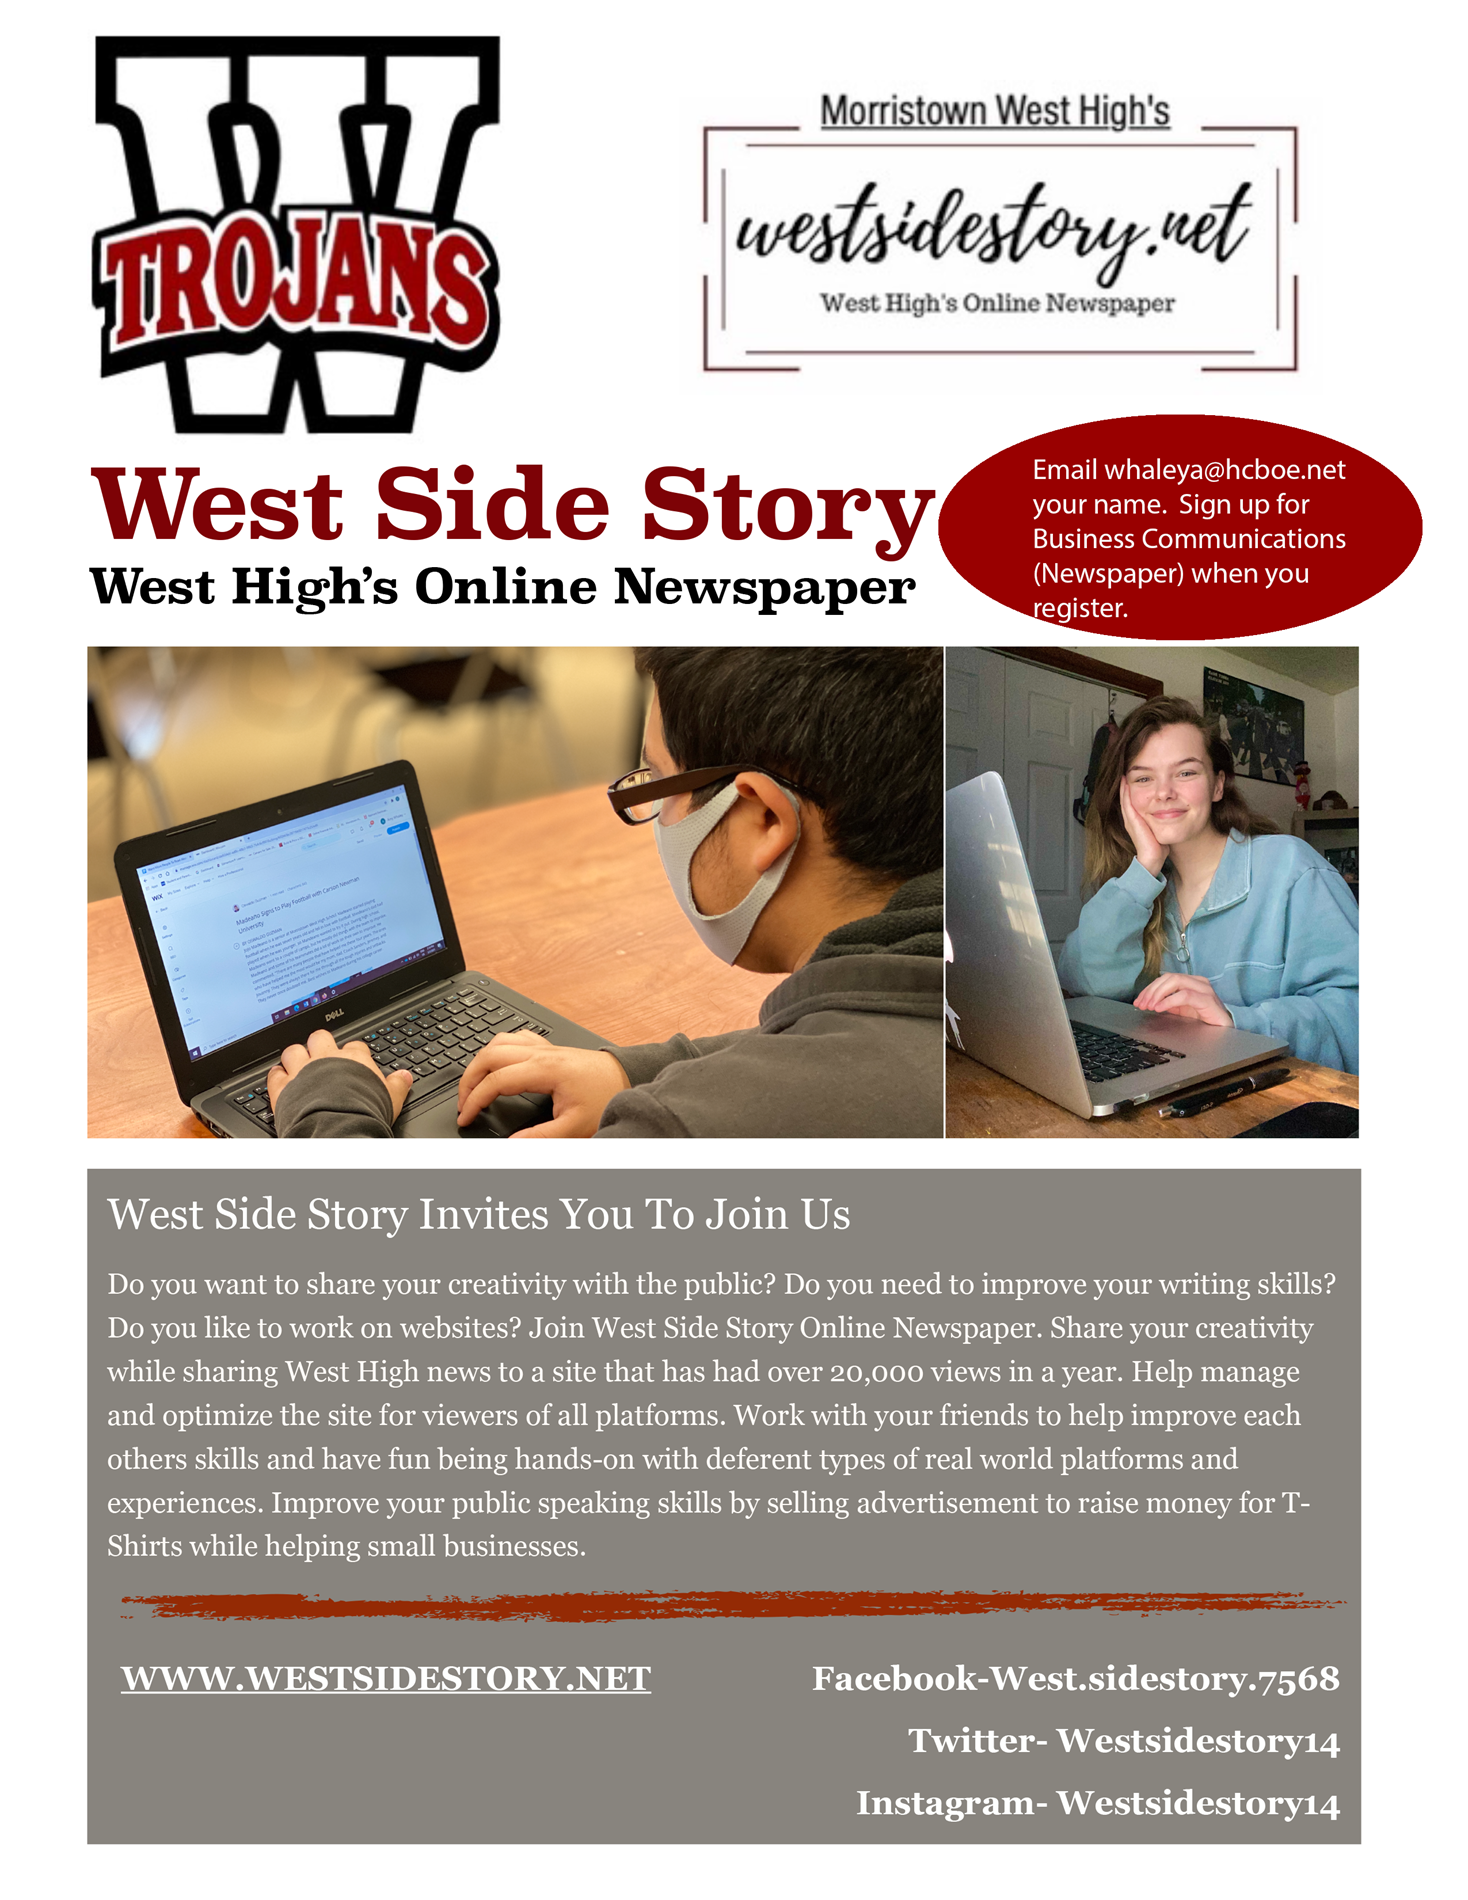 Email whaleya@hcboe.net to sign up for West Side Story online newspaper staff.